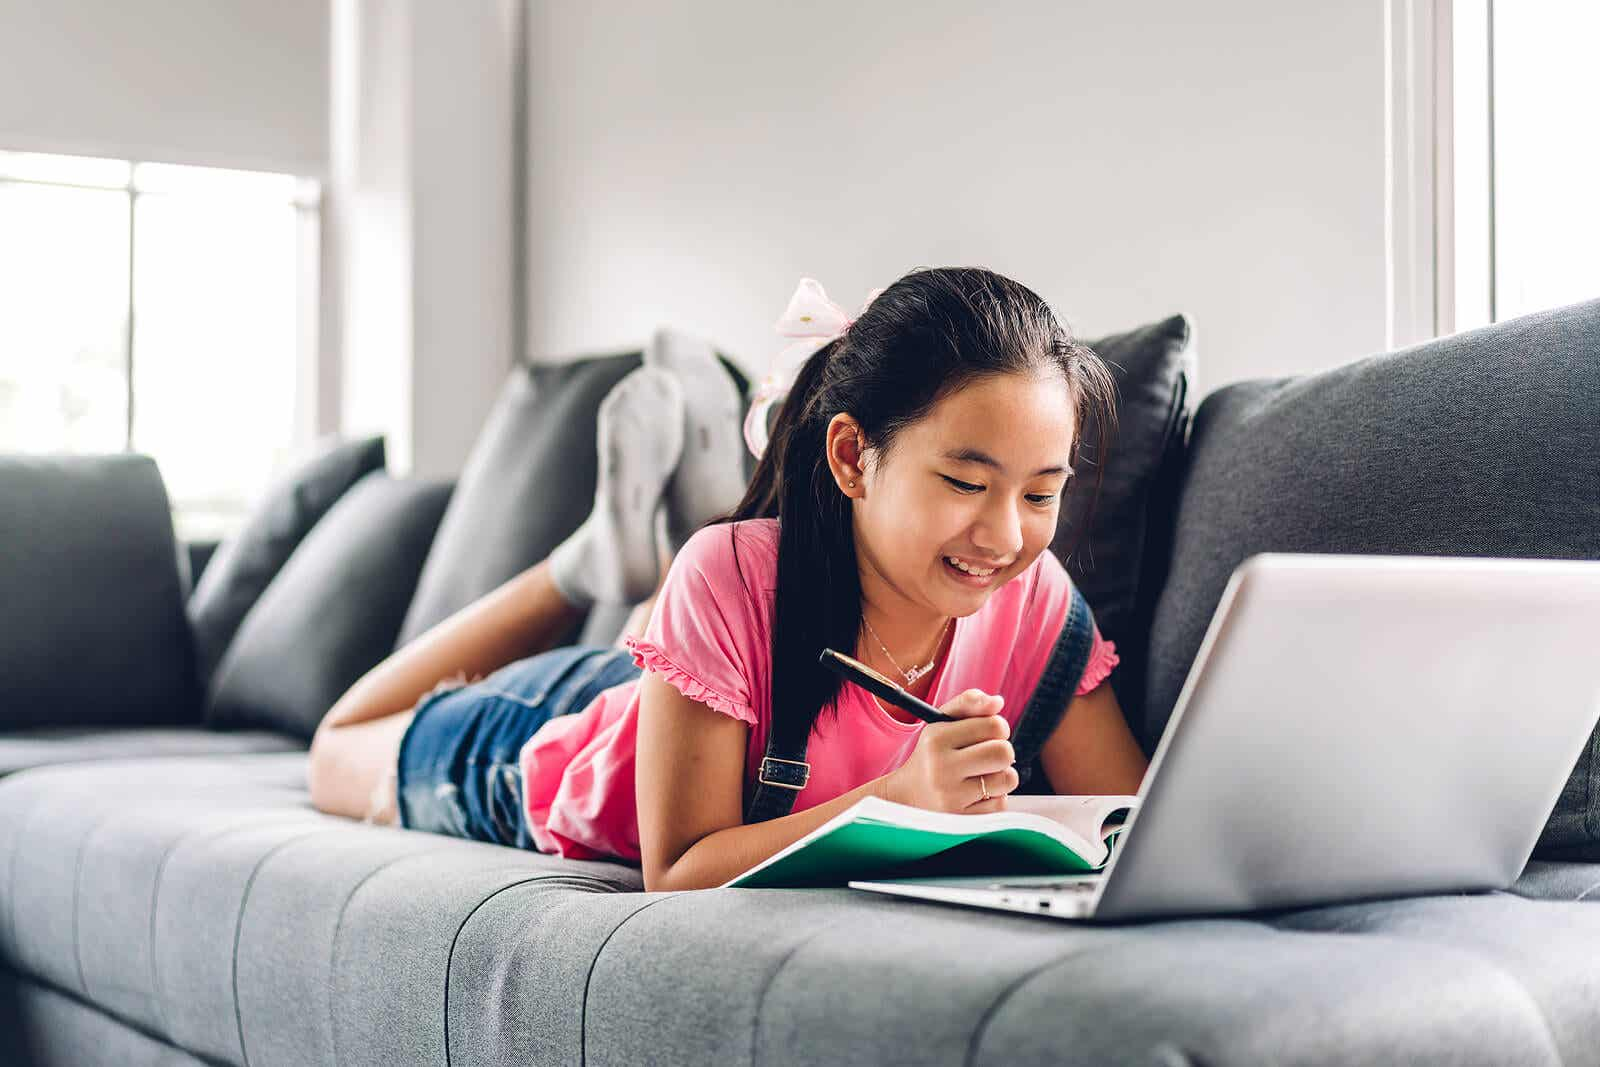 A child lying on a couch doing homework on her laptop computer.